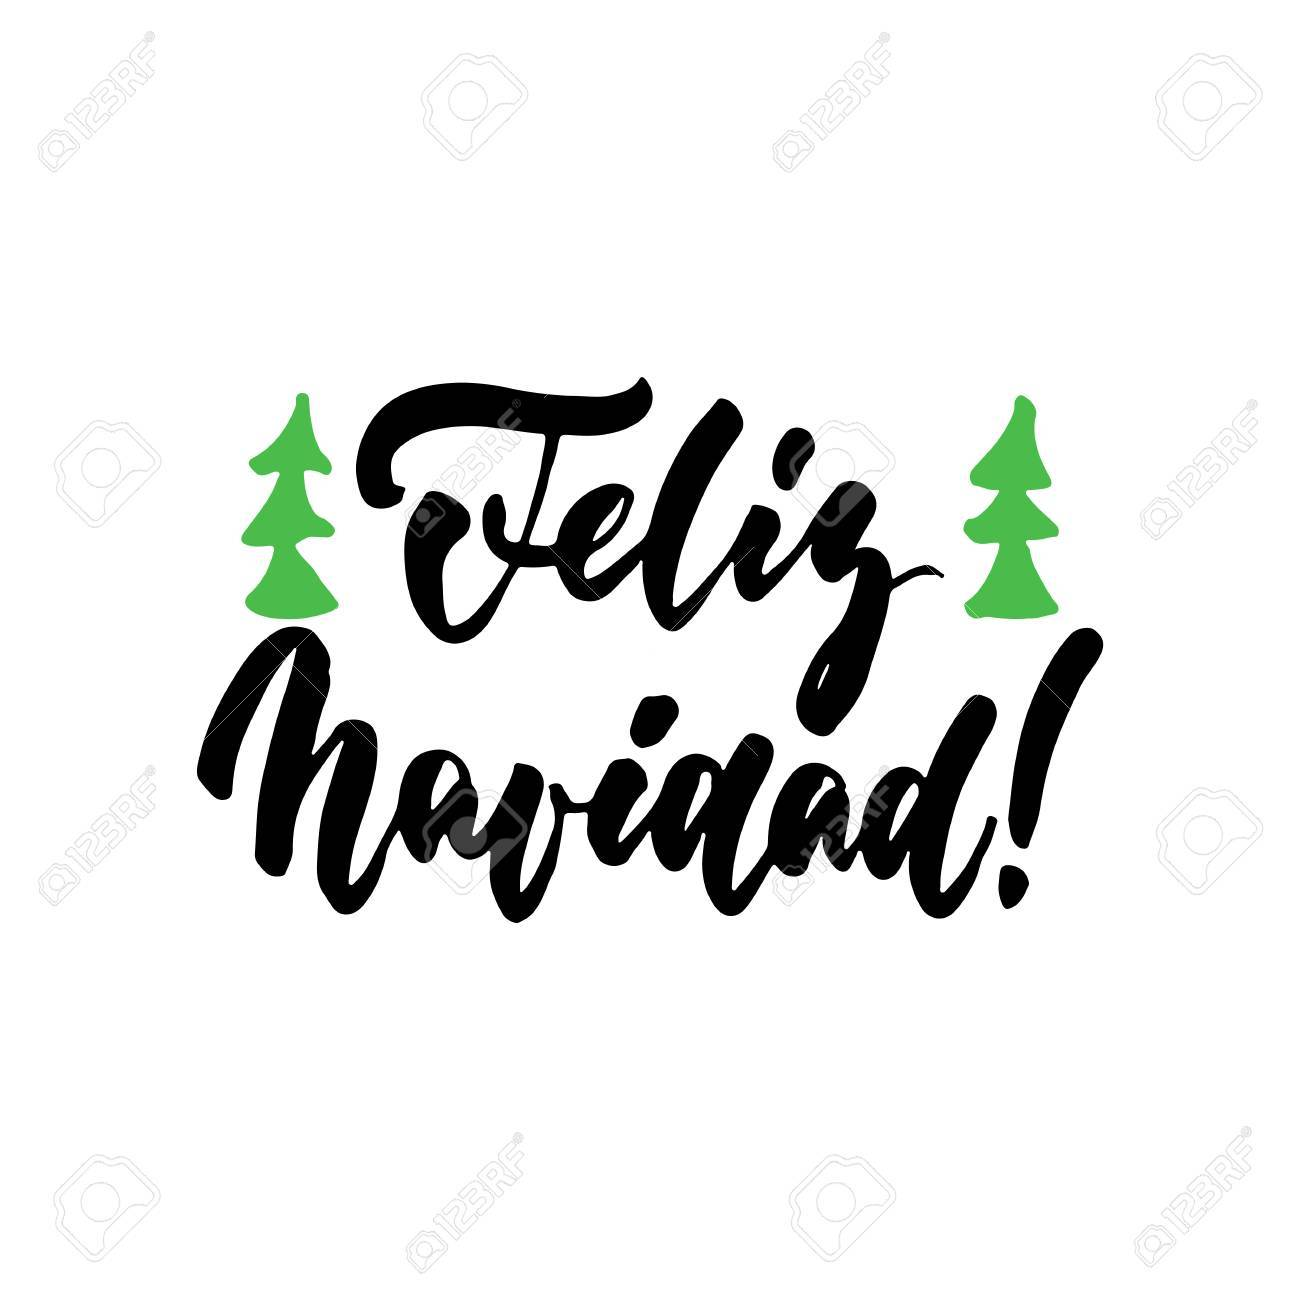 Feliz Navidad - Merry Christmas On Spanish, Hand Drawn Lettering ...